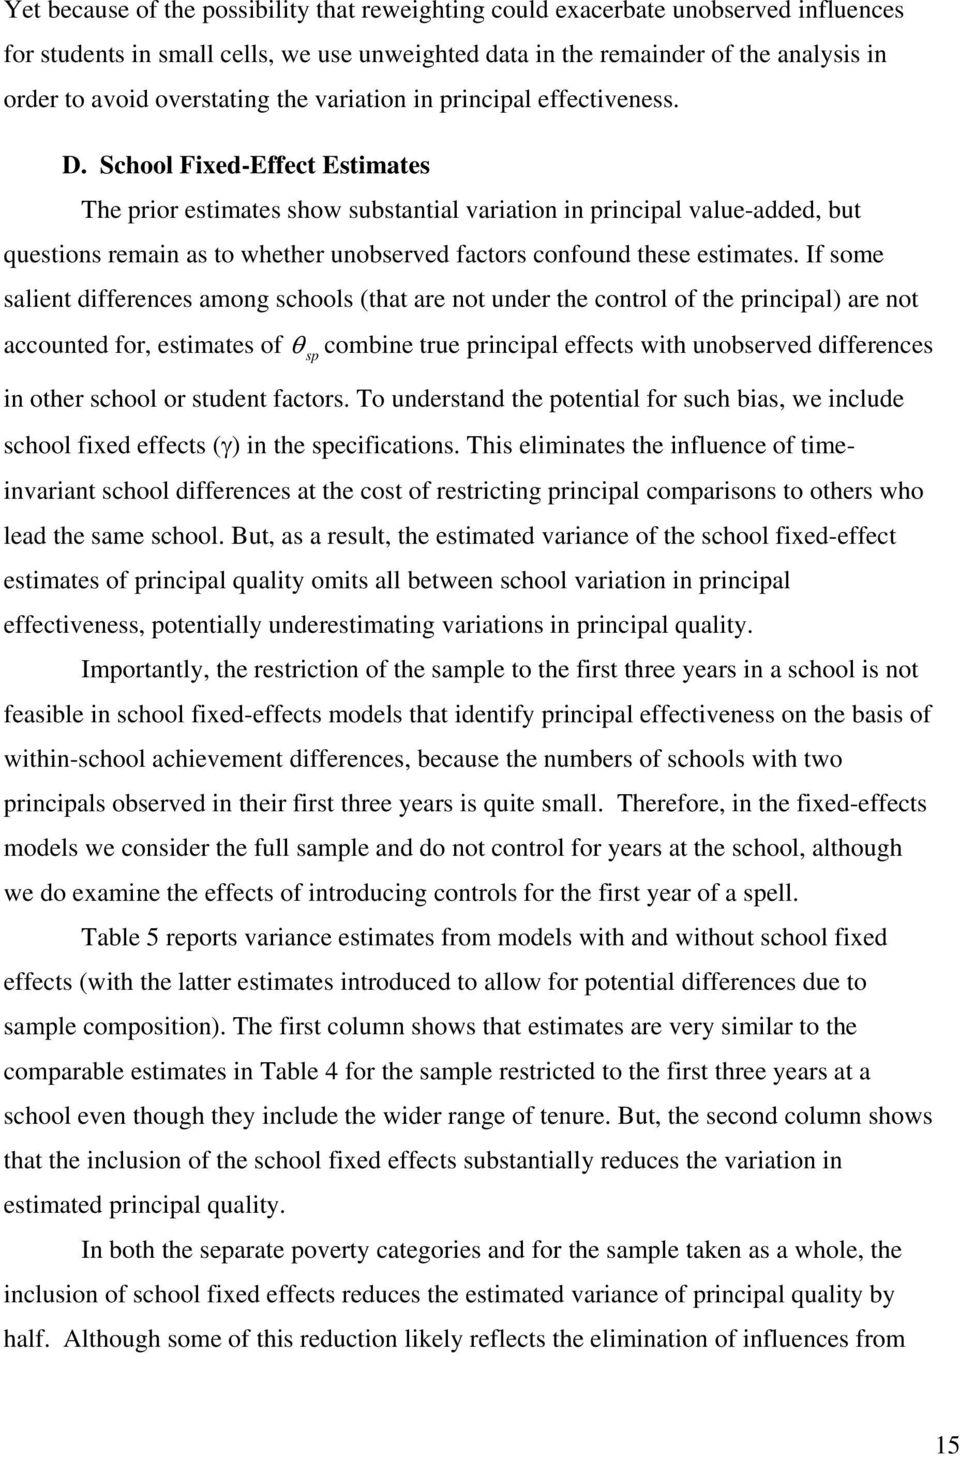 School Fixed-Effect Estimates The prior estimates show substantial variation in principal value-added, but questions remain as to whether unobserved factors confound these estimates.